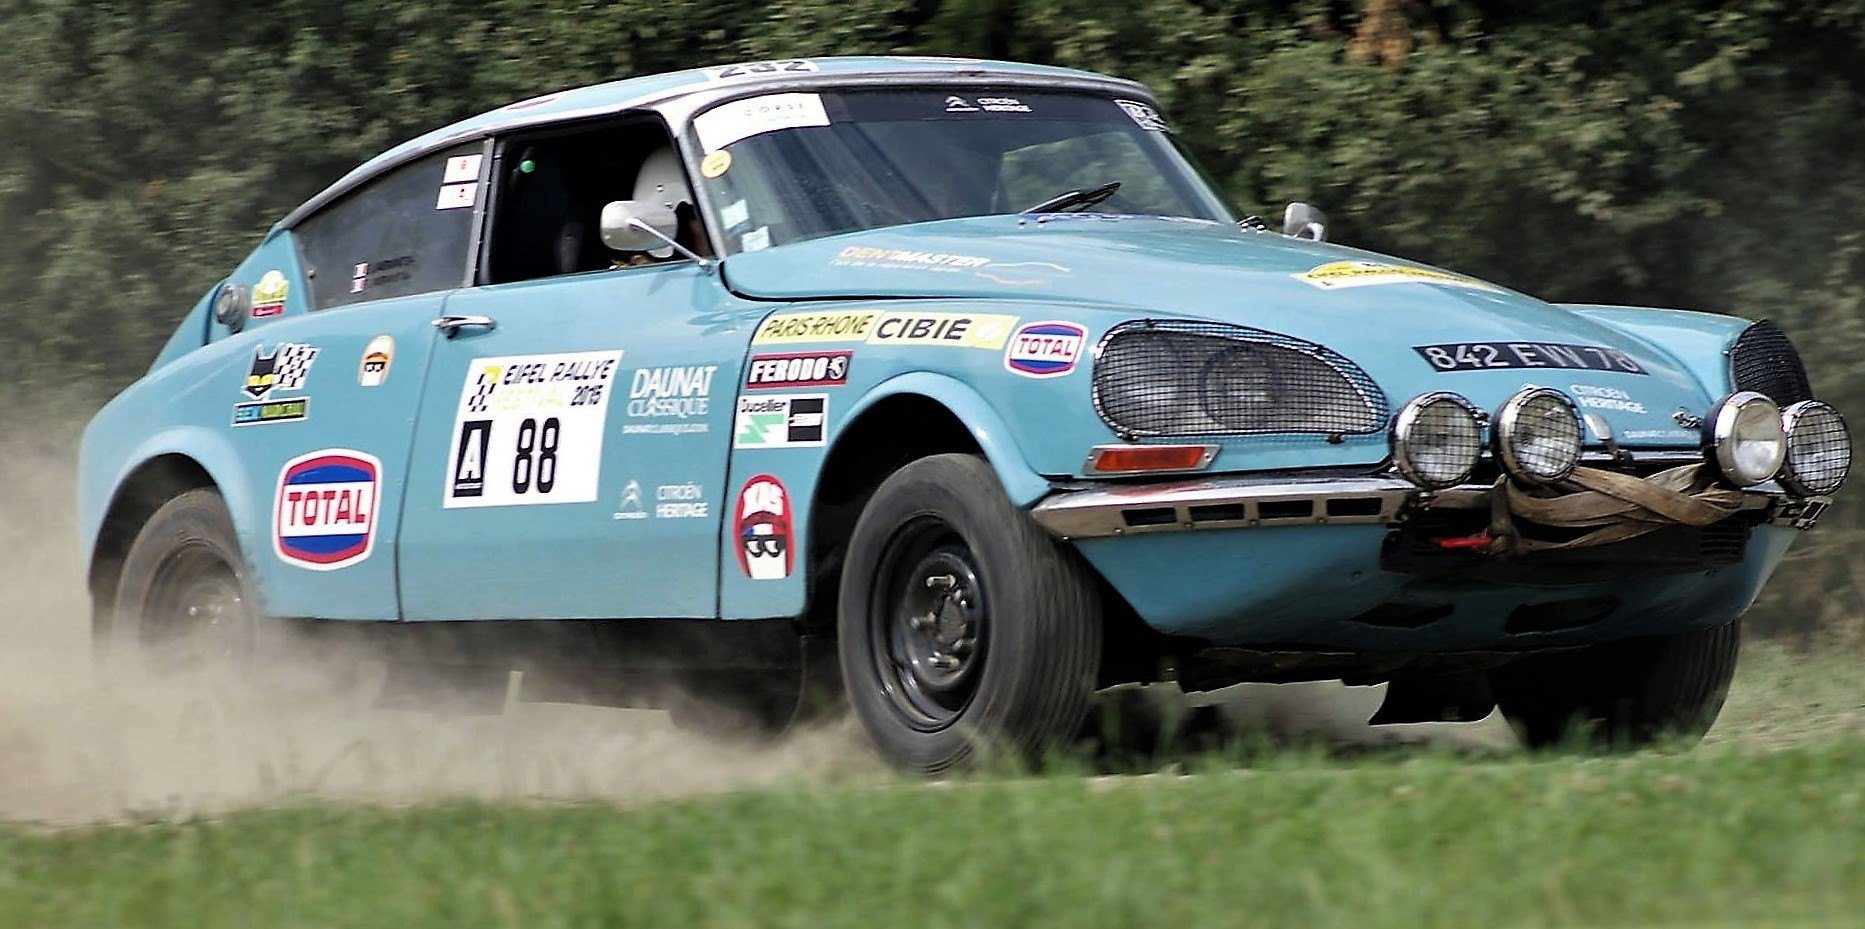 Citroen-retro-Rally-cars-2